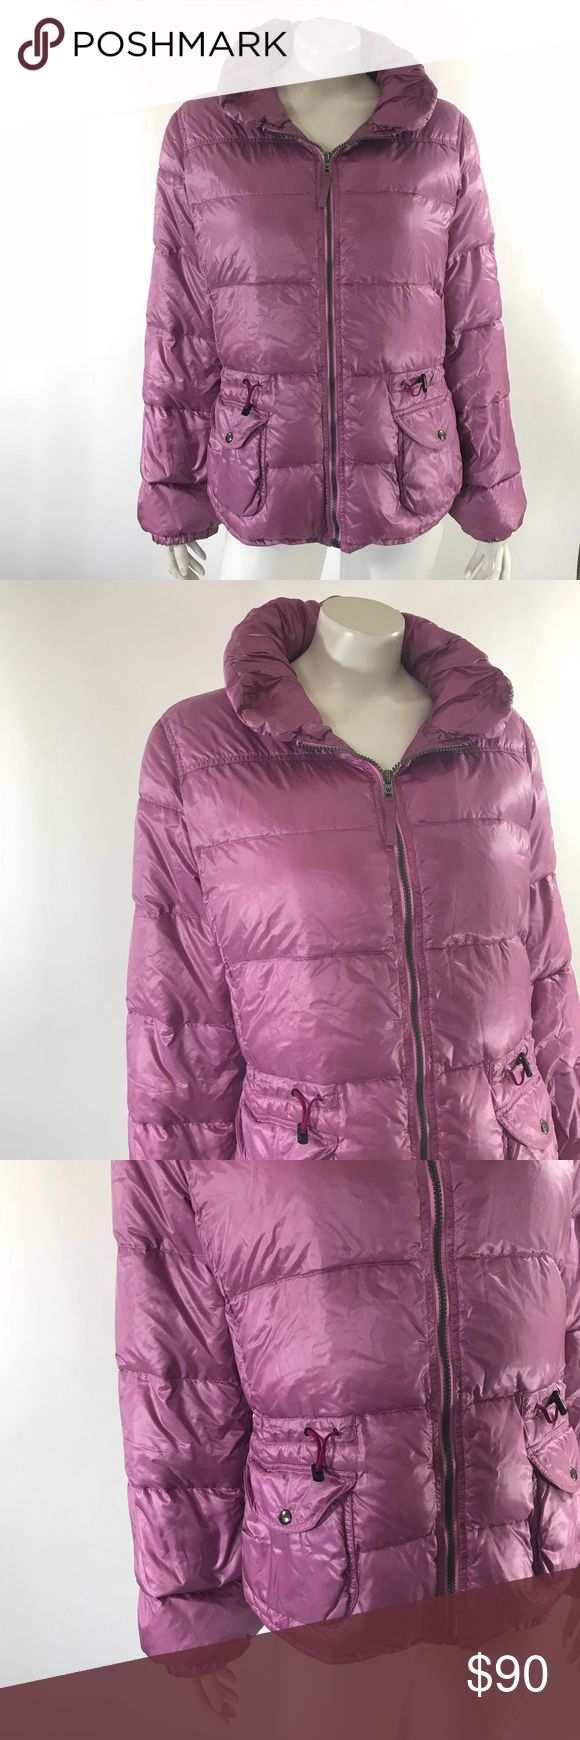 Max Mara Weekend Puffer Coat 14 Purple Down Filled Max Mara Weekend Womens Puffer Coat Sz 14 Light Purple Down Filled Cinched Waist. Measurements: (in inches) Underarm to underarm: 22 Length: 23 Sleeve: 24 Good, gently used condition Max Mara Jackets & Coats Puffers